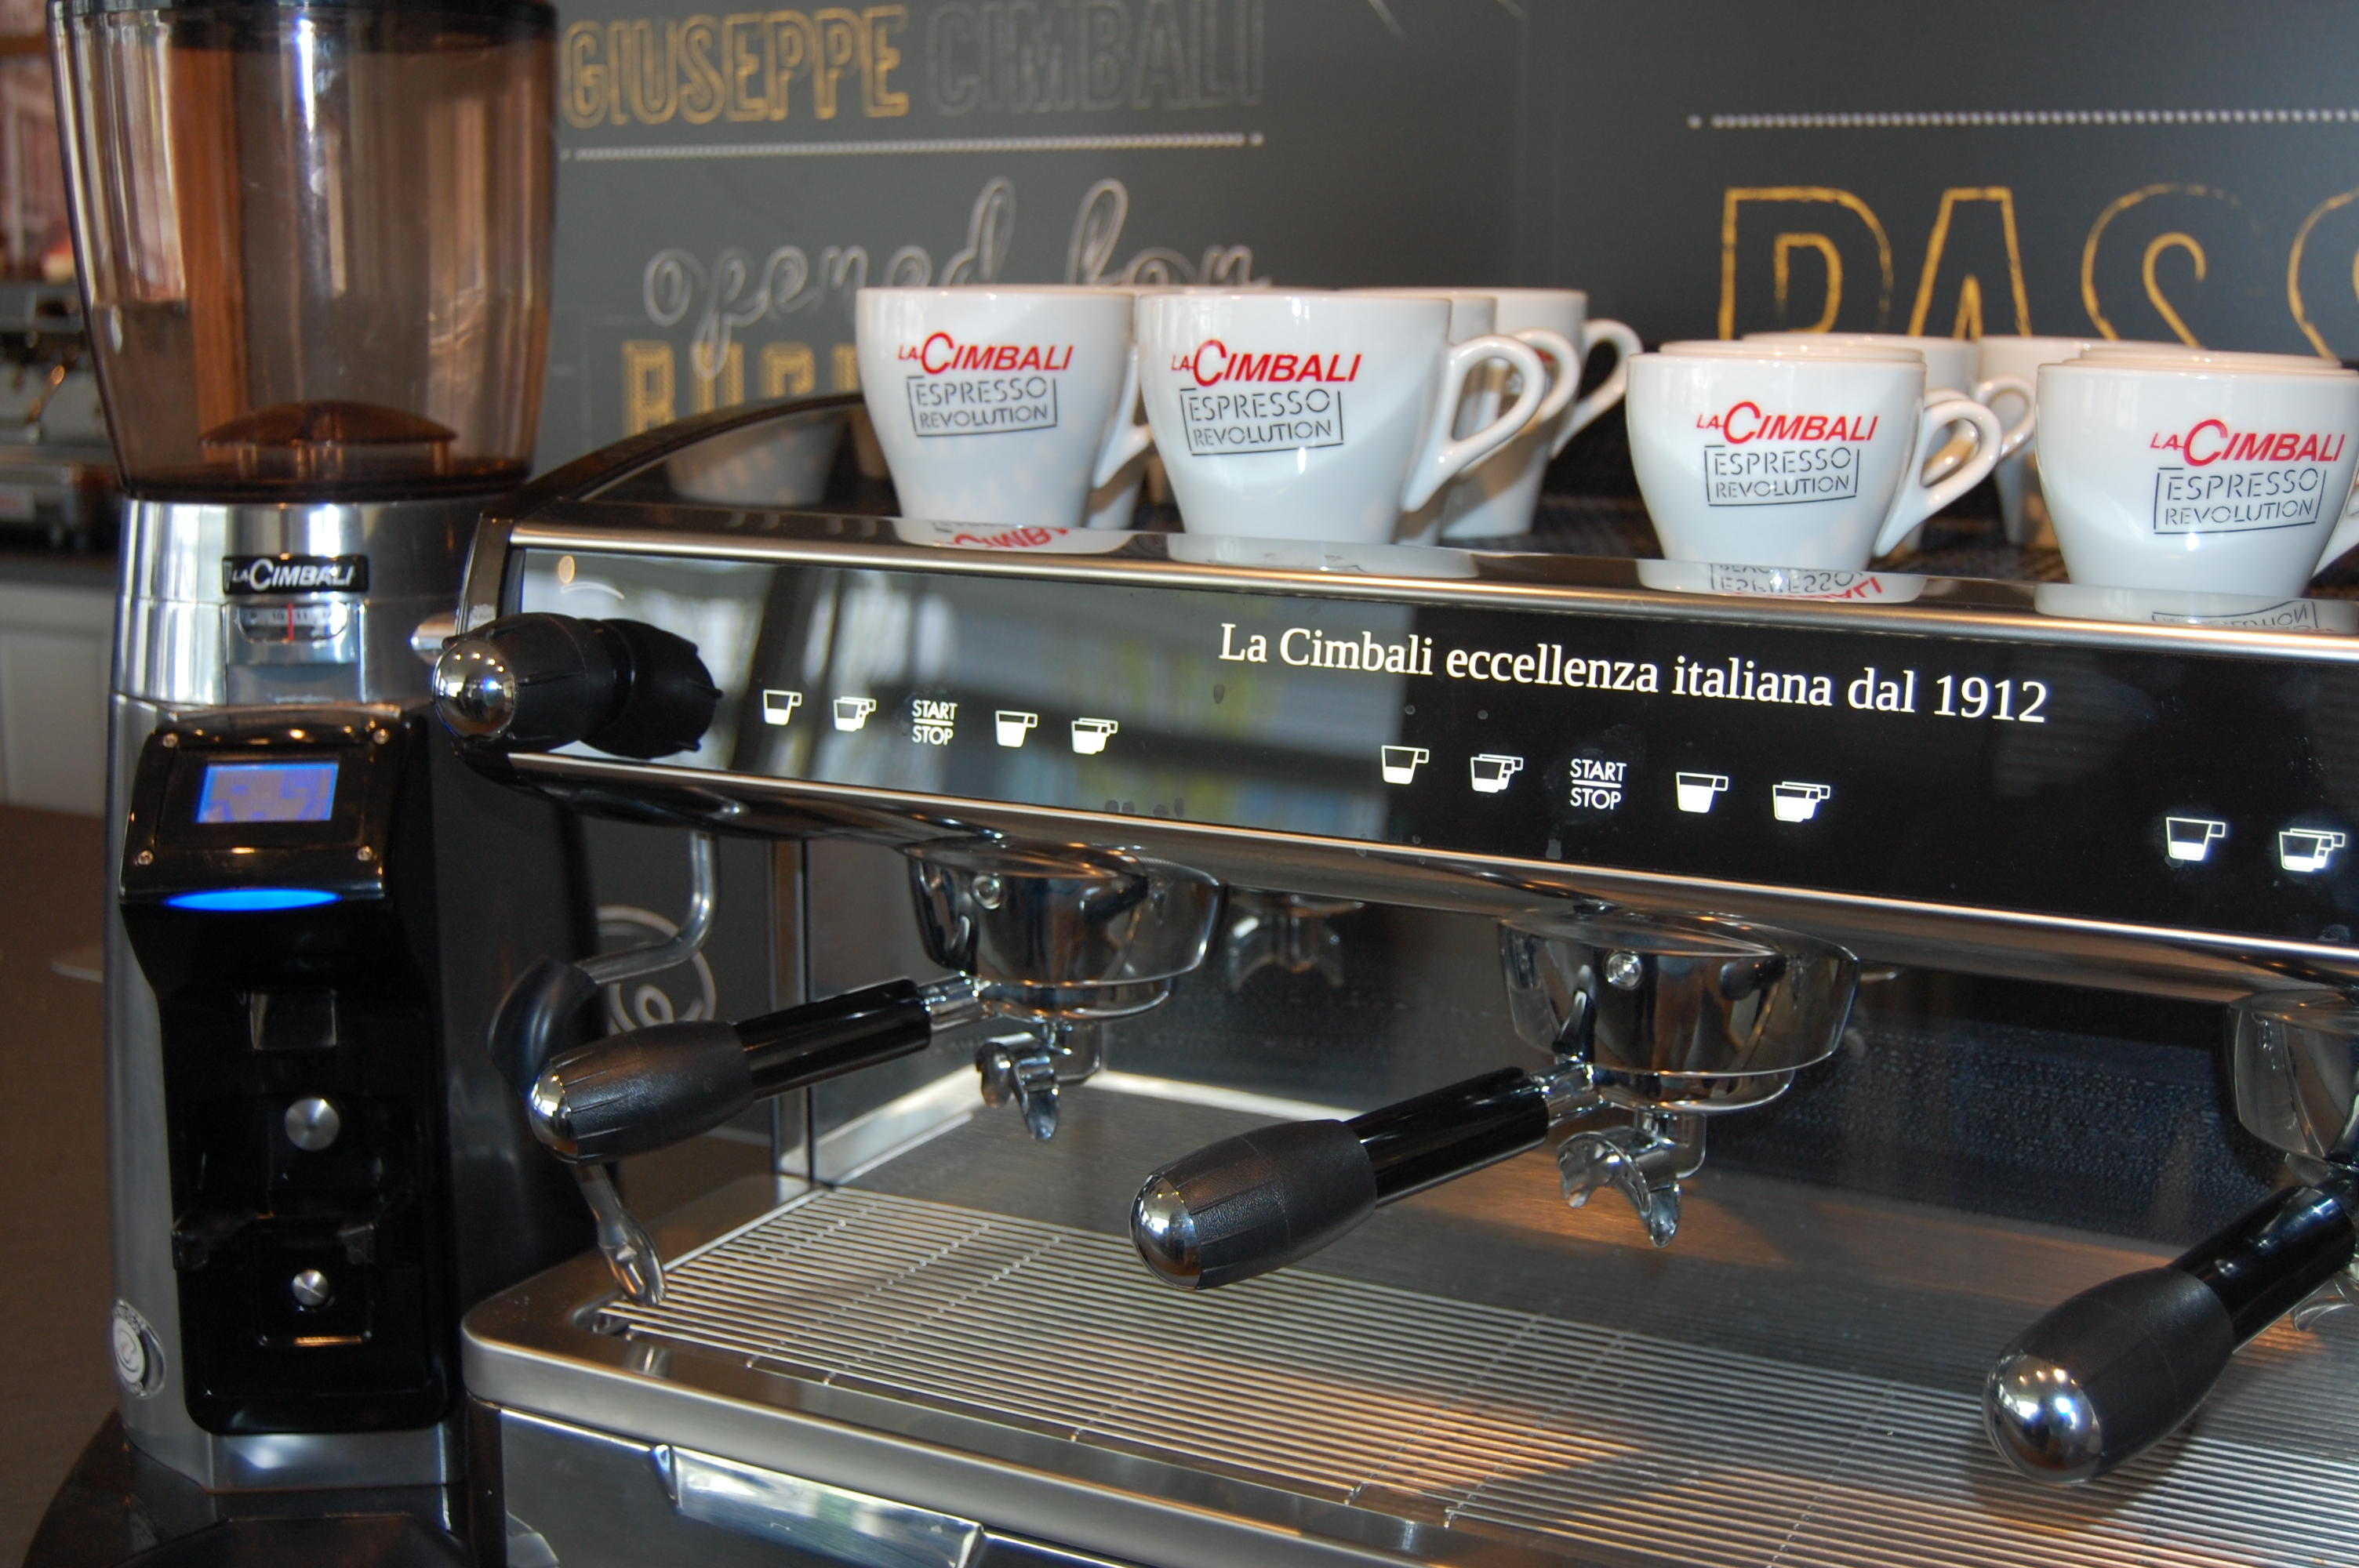 La Cimbali Demonstrate The M34 Espresso Machine At Caffe Culture 2014